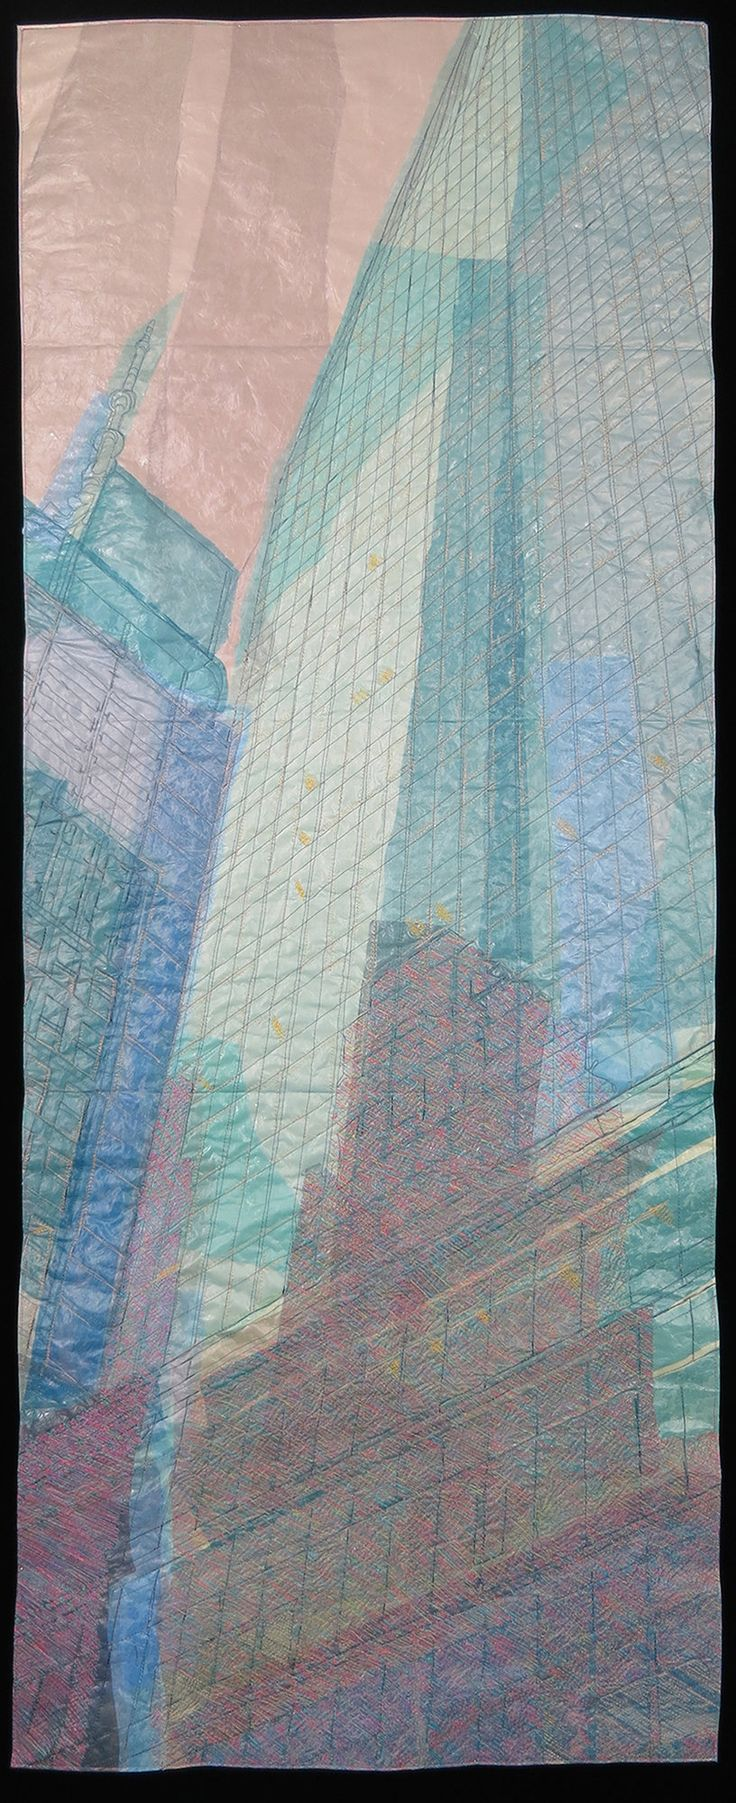 Specular Reflection by Natalya Aikens. Specular Reflection is part of the City Lines series, which is the newest series in my repertoire. It is inspired by New York City: small alleyways, huge avenues, cracked pavement, glass skyscrapers, brick storefronts, vibrant graffiti, grand bridges and rusting fire escapes.